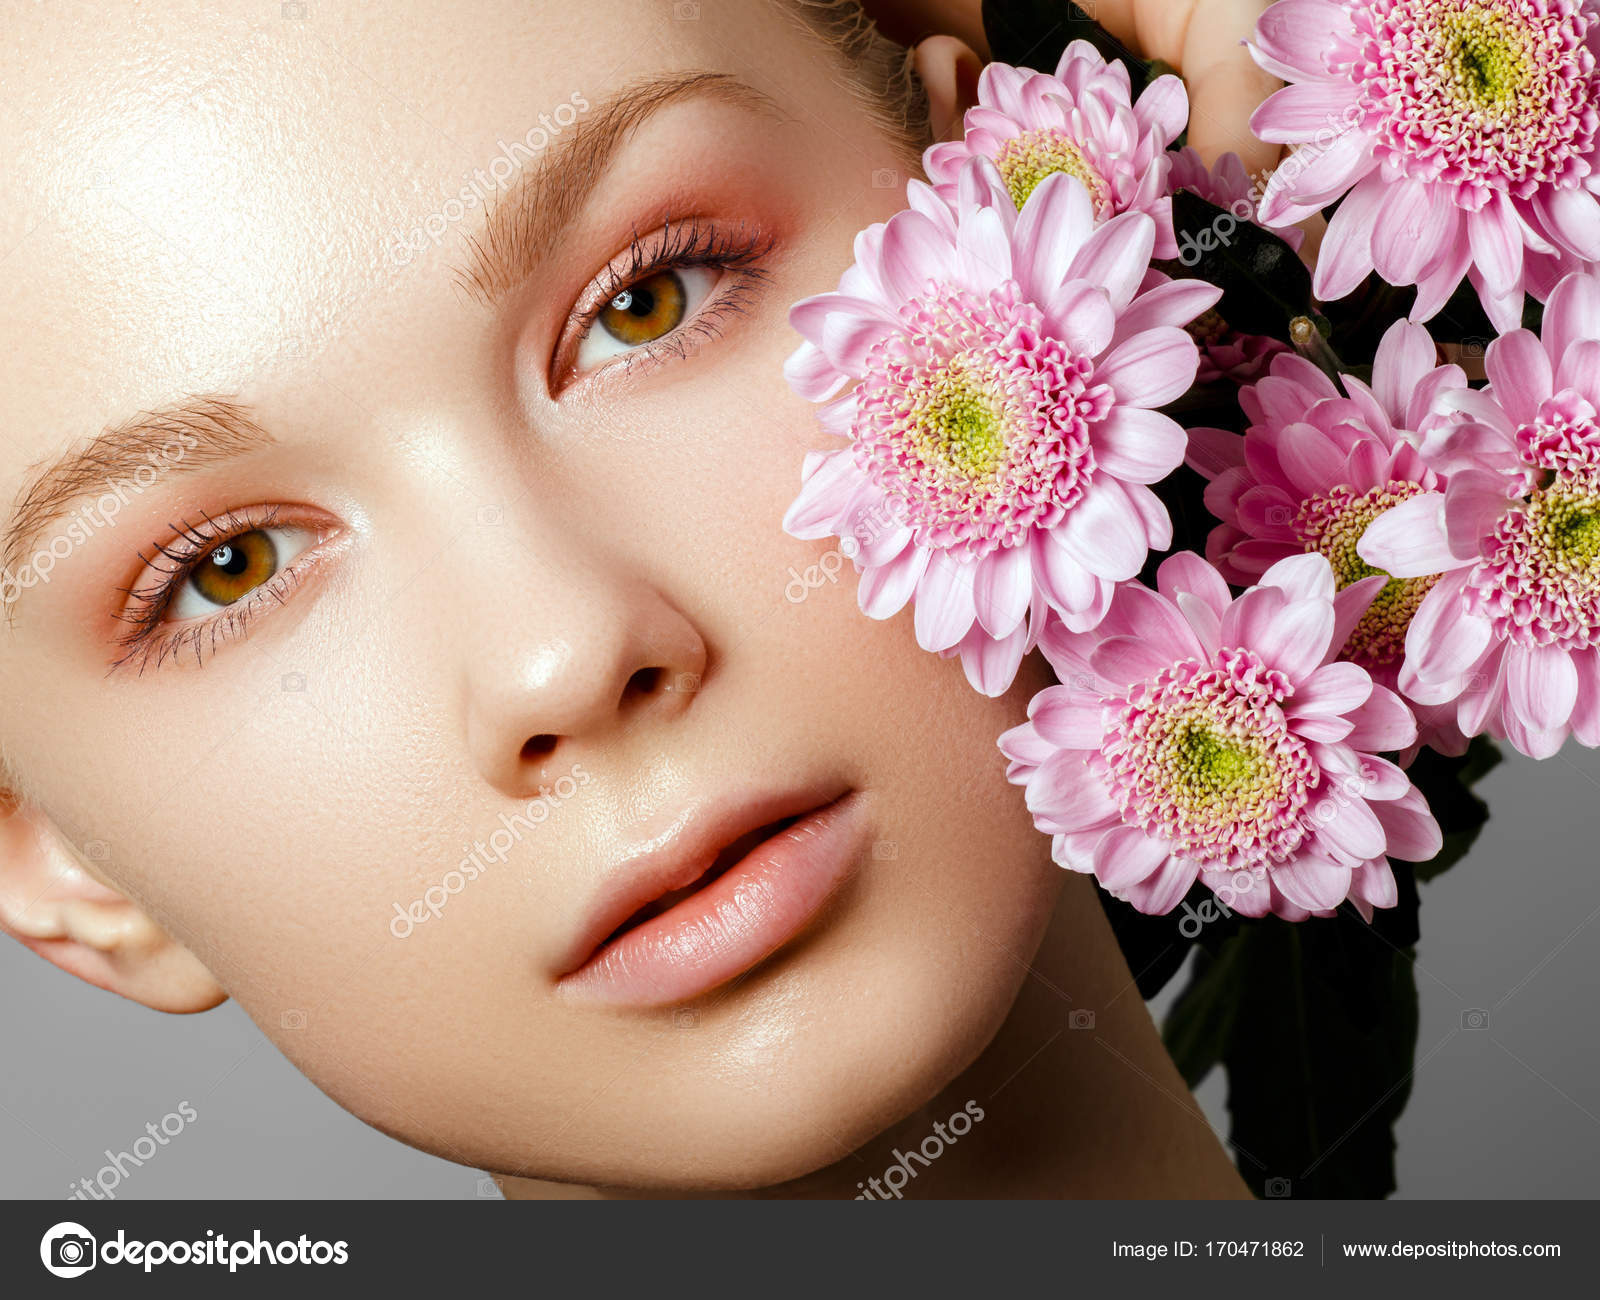 Aesthetic cosmetology spring woman beauty summer model girl with beauty summer model girl with colorful flowers beautiful lady with blooming flowers holiday fashion makeup photo by looking2thesky izmirmasajfo